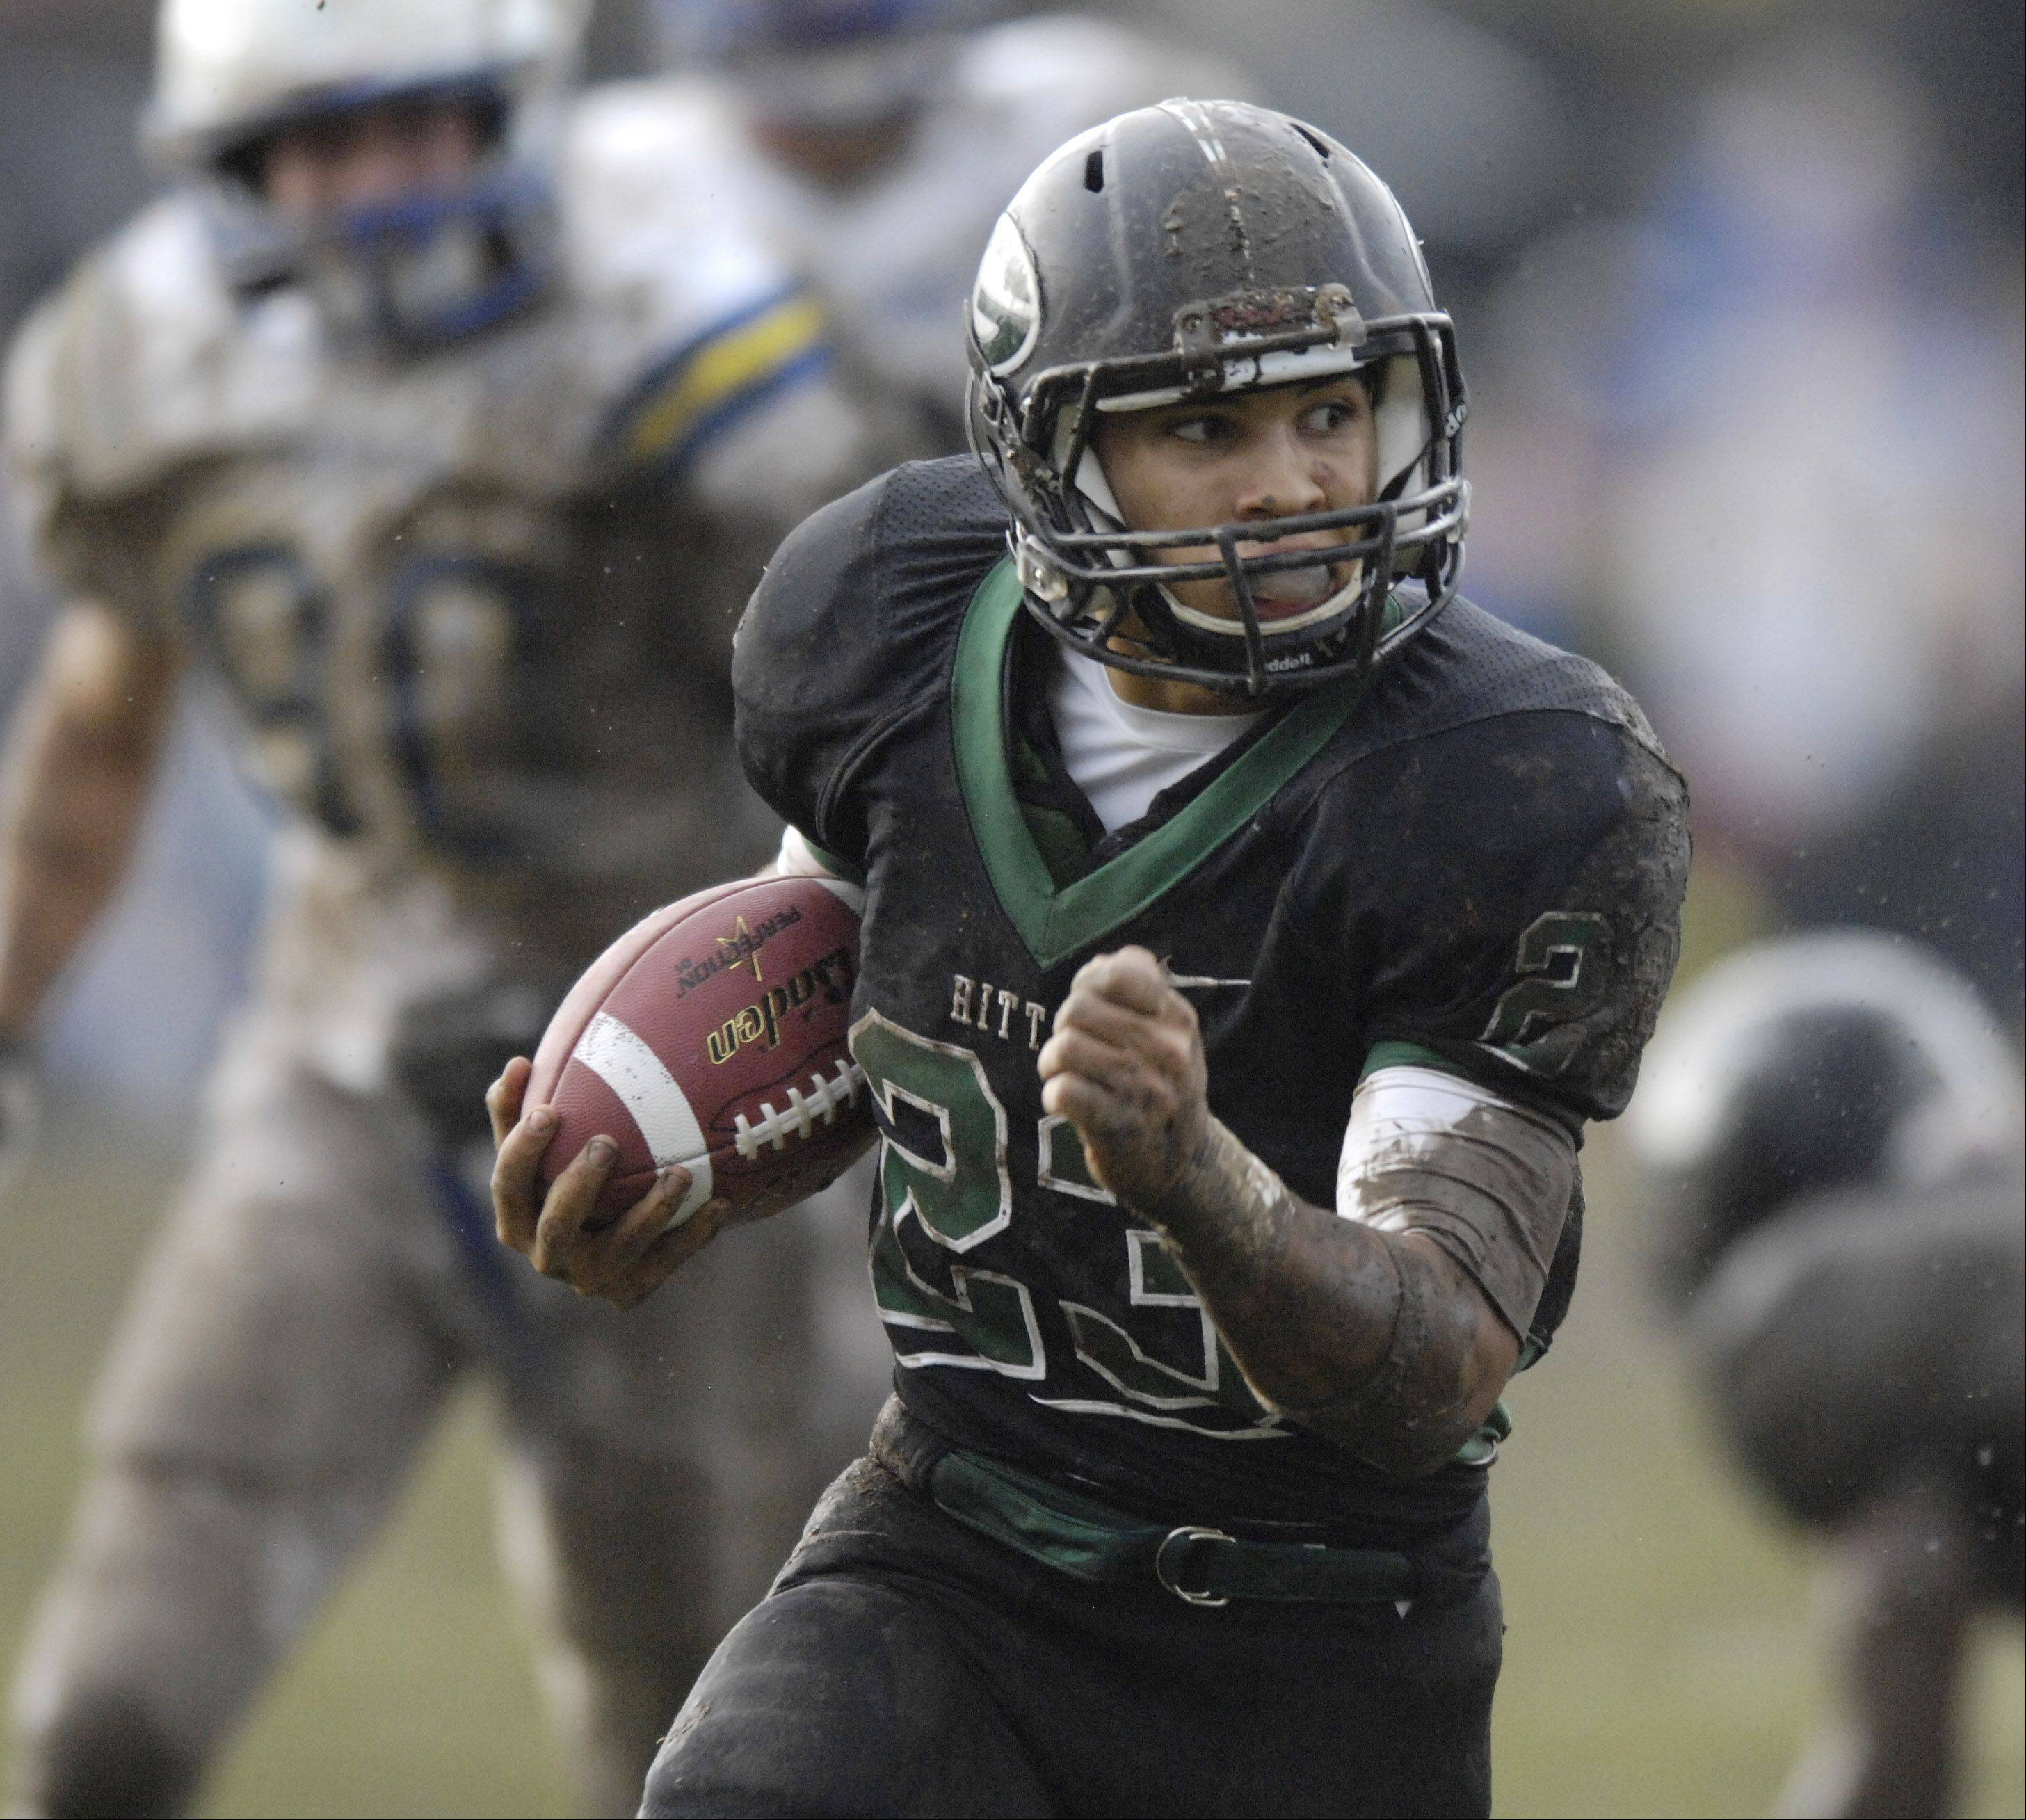 Glenbard West running back Scott Andrews carries the ball during Saturday's game against Wheaton North.